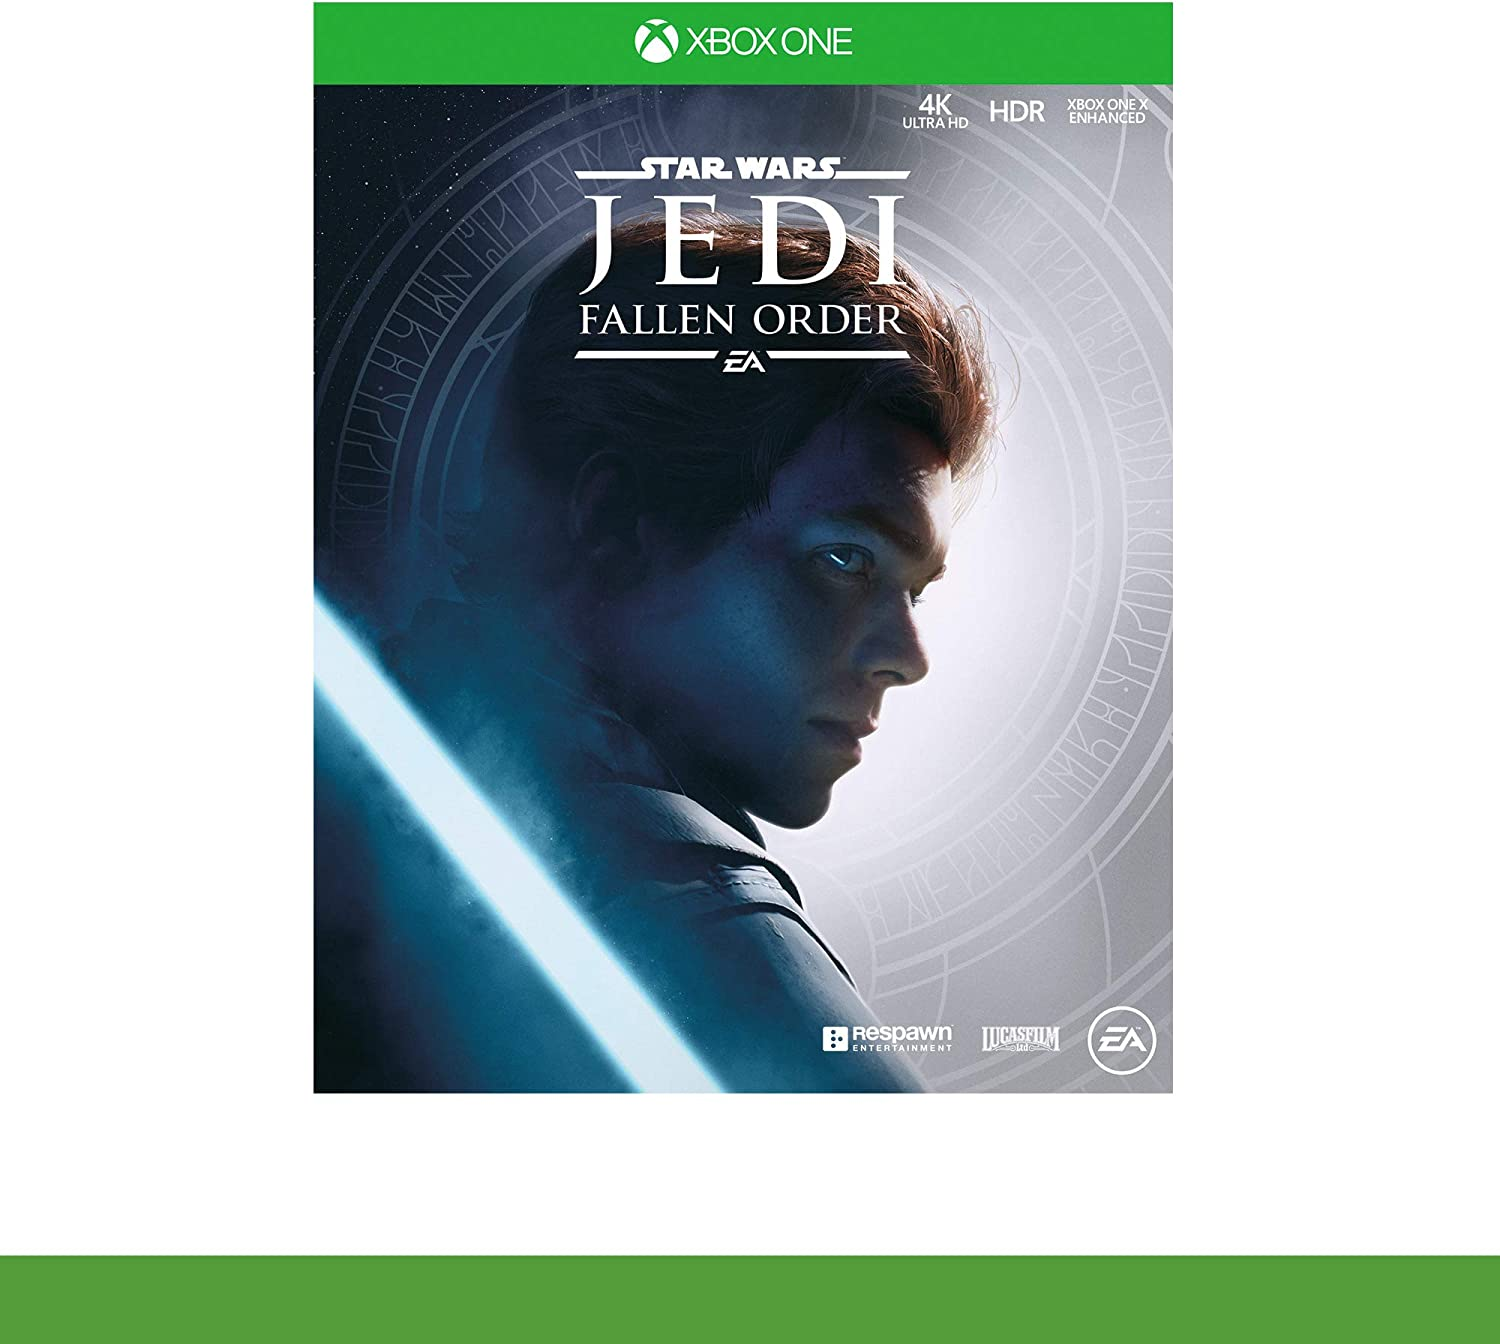 Xbox One S 1TB Bundle Star Wars Jedi: Fallen Order Deluxe Edition ...